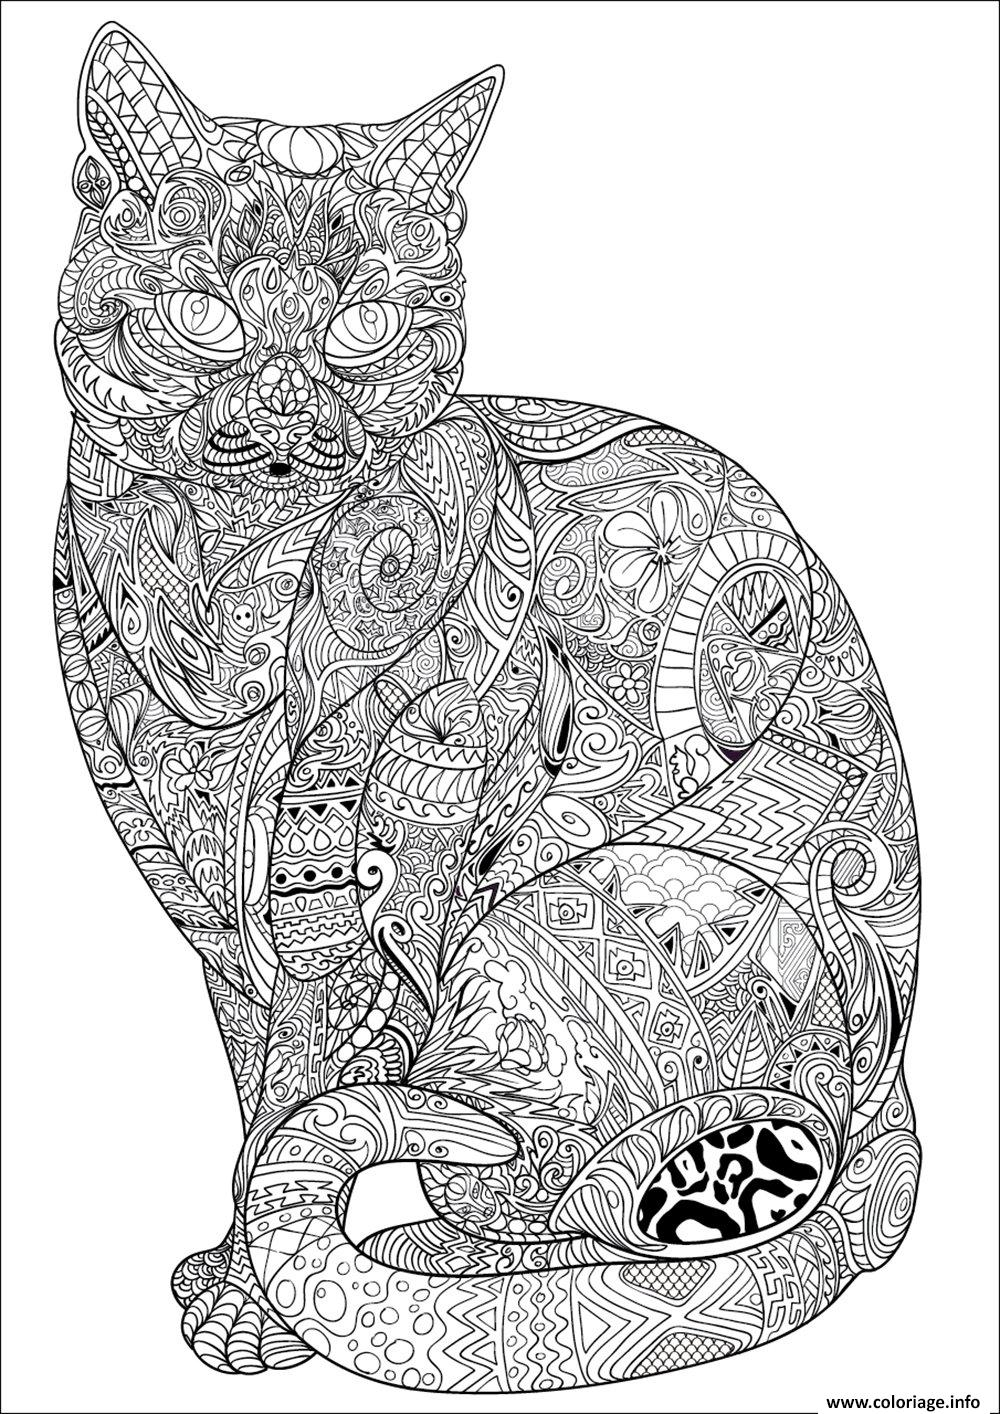 Coloriage chat adulte difficile antistress animaux - Image a colorier et imprimer gratuitement ...